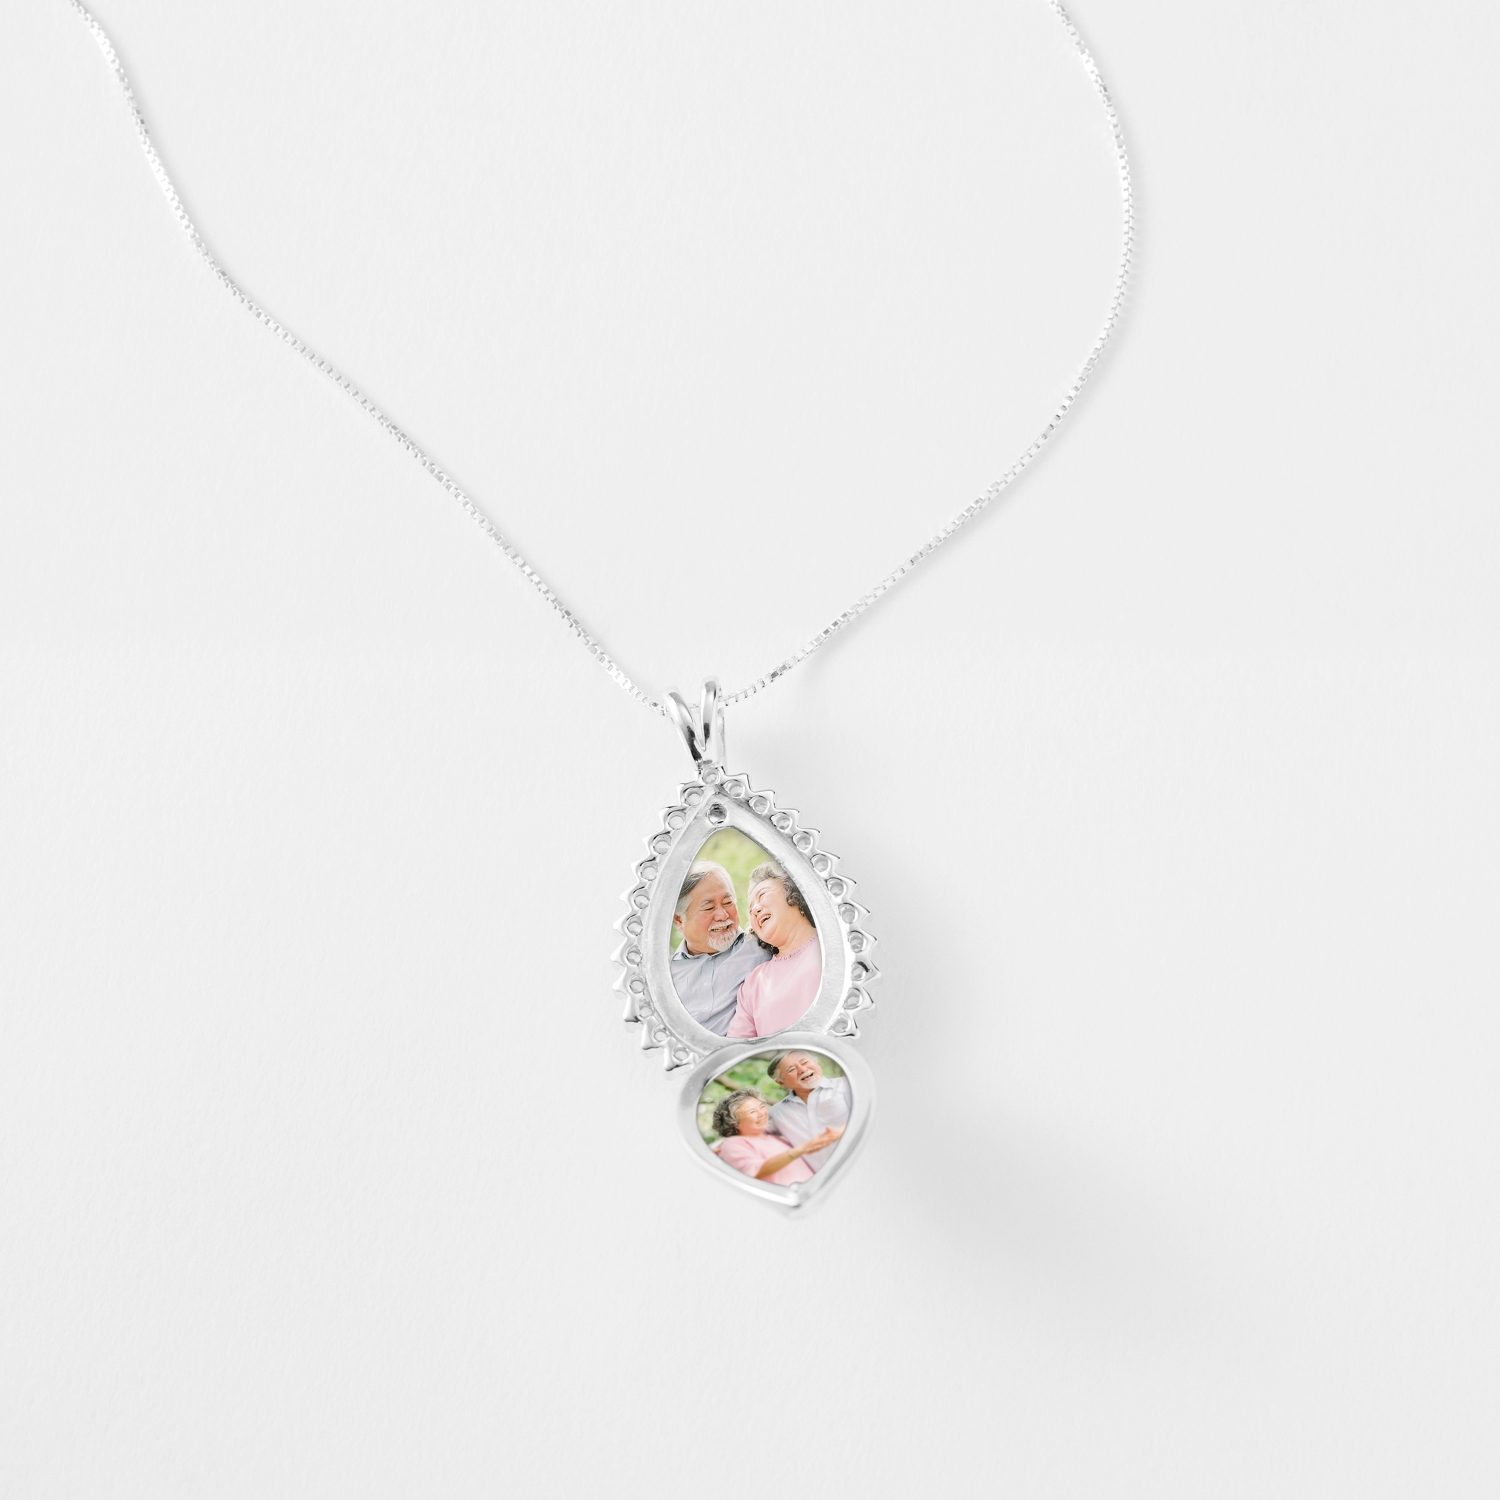 pretty engraved flowers locket necklace with flower lockets silver heart sterling in women for